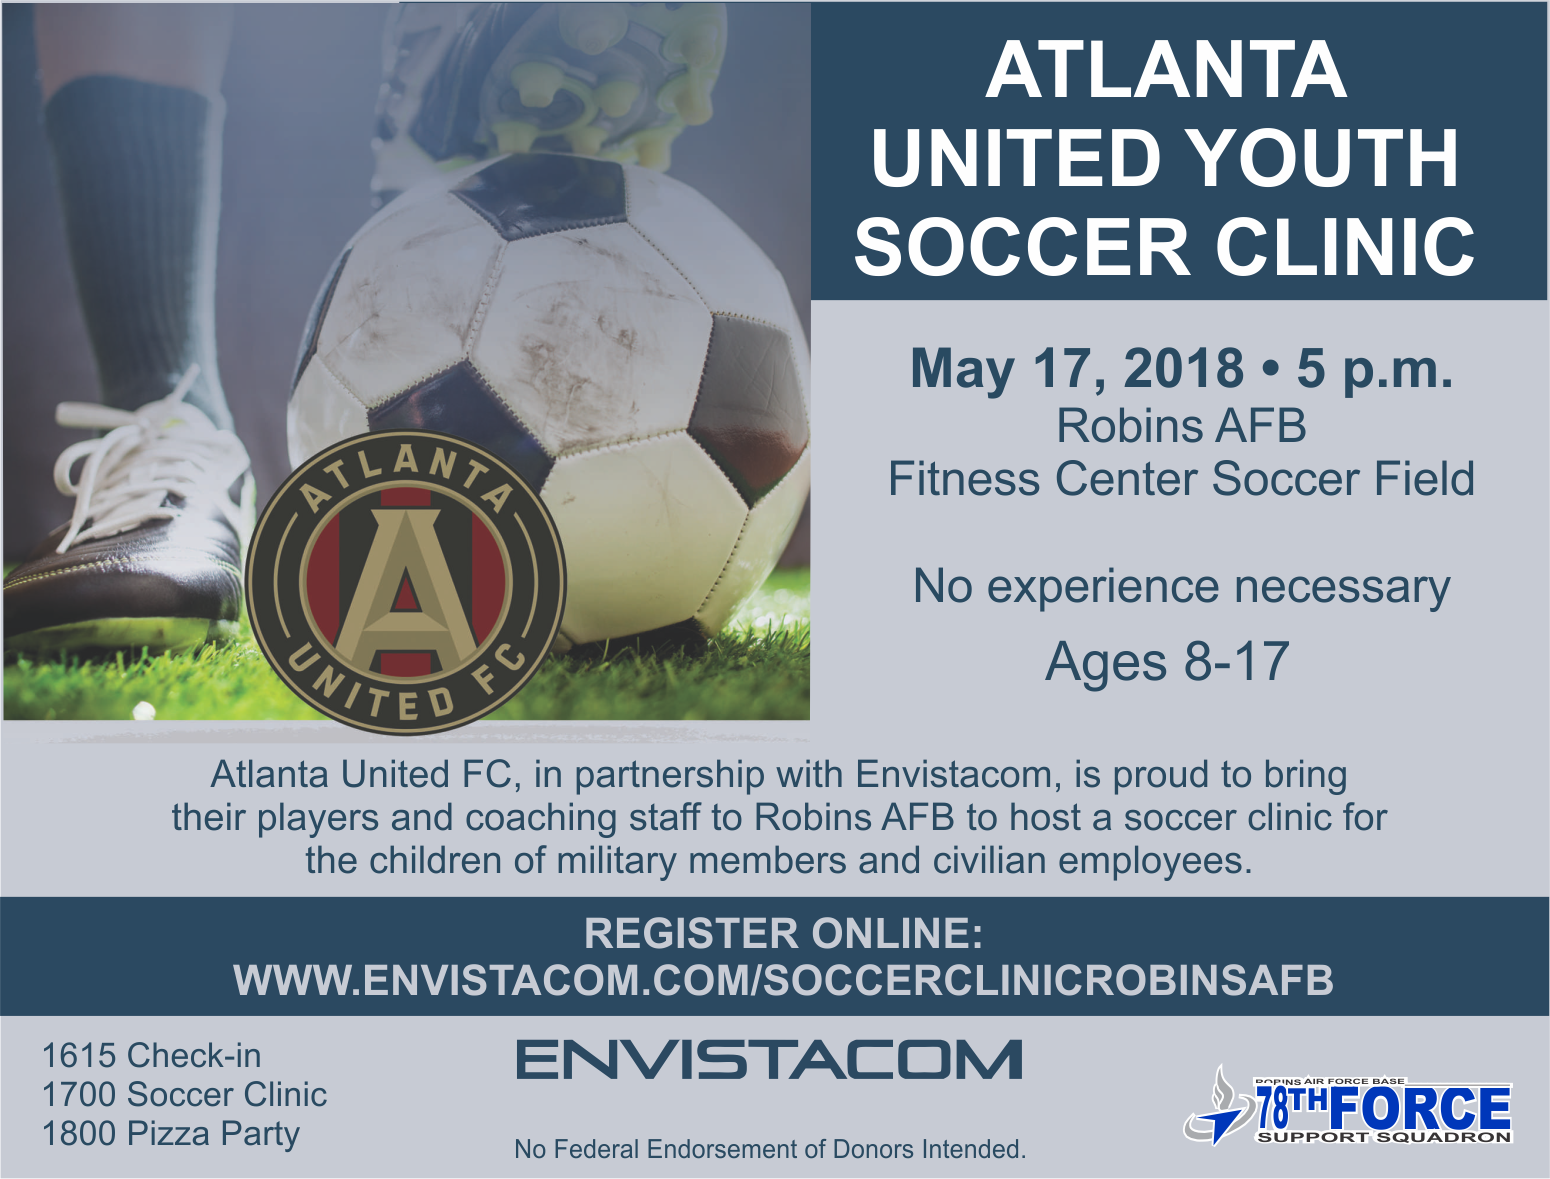 Atlanta United Youth Soccer Clinic | 78th Force Support Squadron